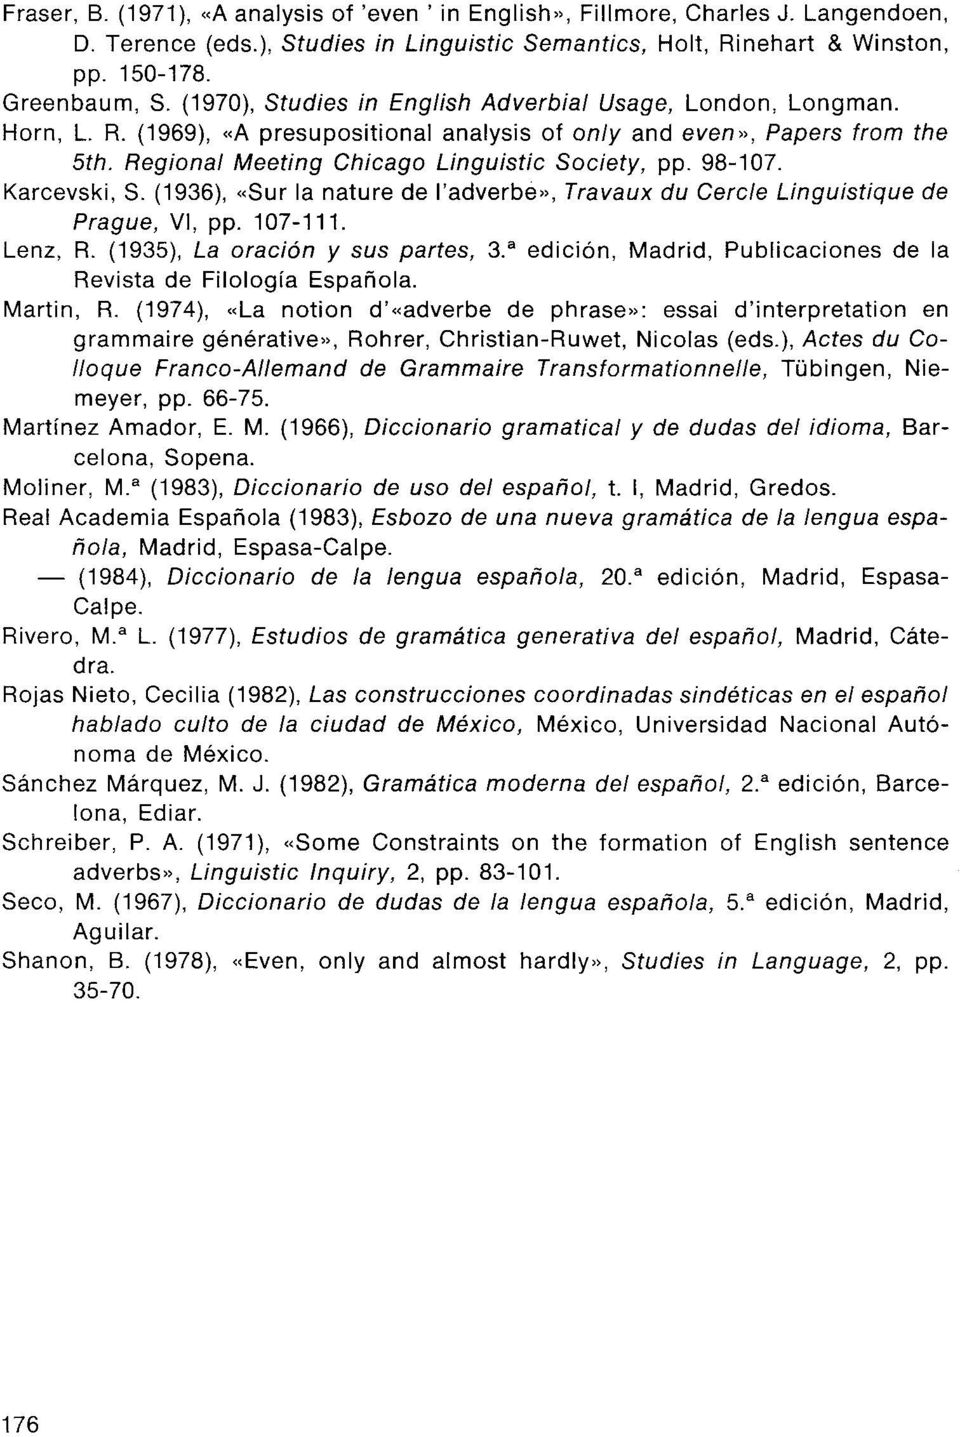 98-107. Karcevski, S. (1936), «Sur la nature de l'adverbe», Travaux du Cercle Linguistique de Prague, VI, pp. 107-111. Lenz, R. (1935), La oración y sus partes, 3.